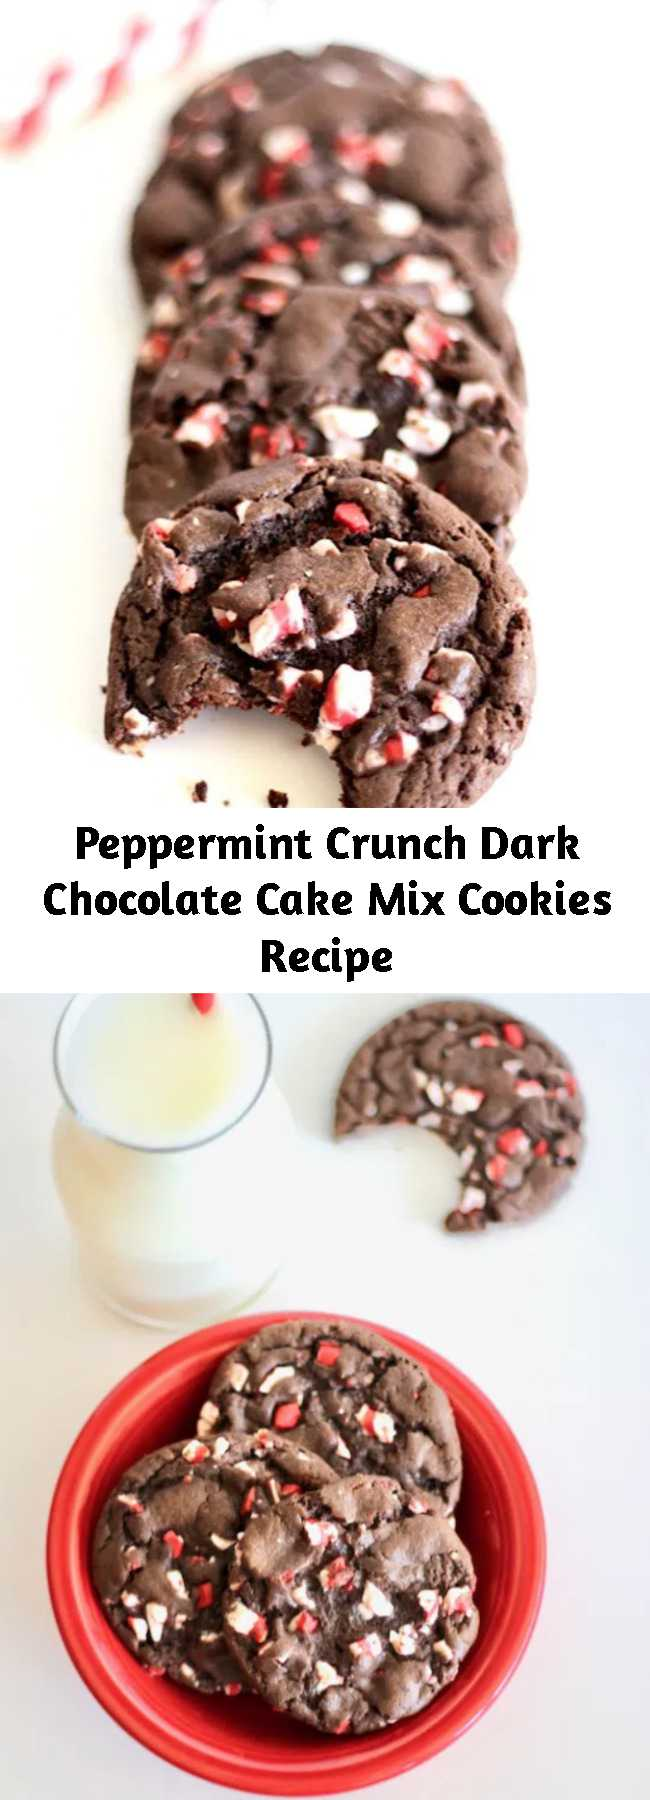 Peppermint Crunch Dark Chocolate Cake Mix Cookies Recipe - These dreamy Peppermint Crunch Dark Chocolate Cake Mix Cookies taste just like Christmas with every bite!